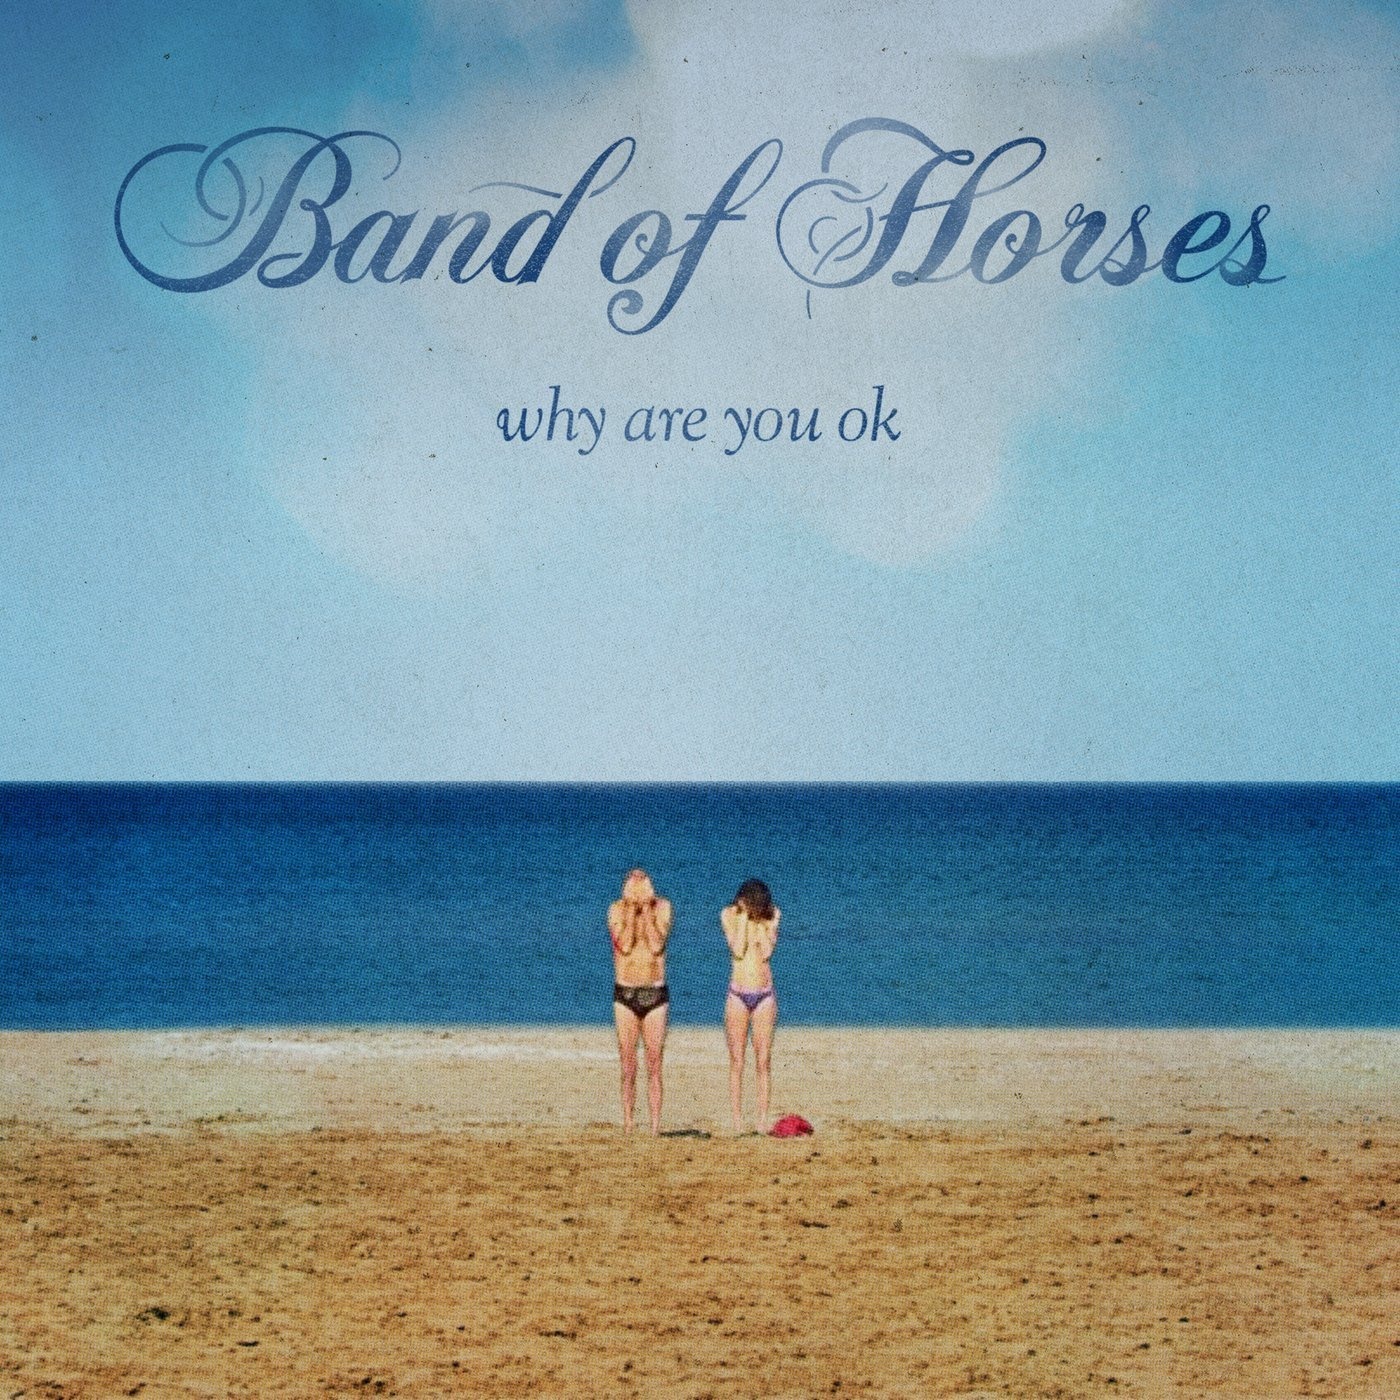 band-of-horses-why-are-you-ok